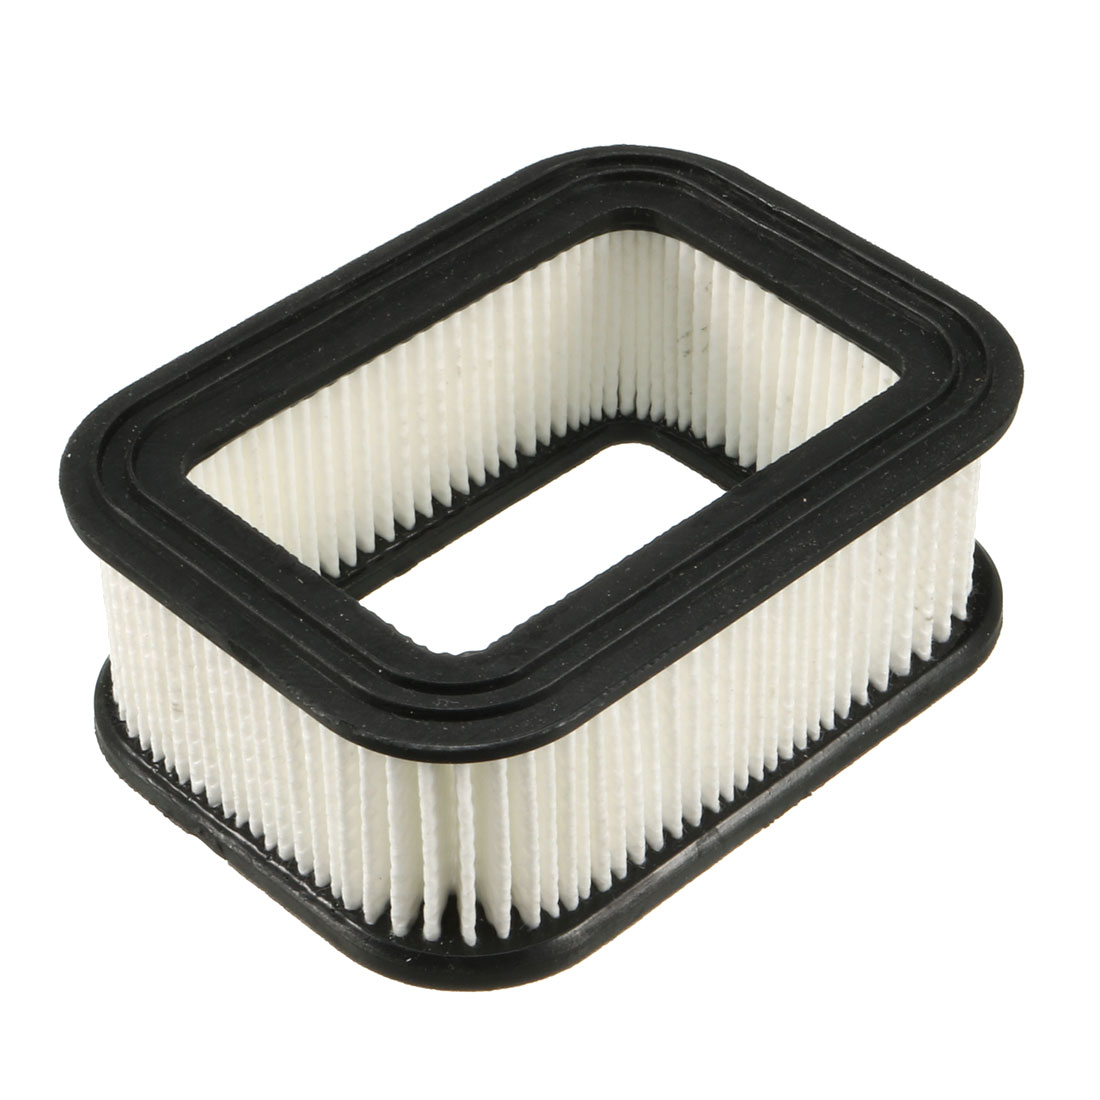 New Replacement Extra Guard Panel Engine 45/52/58 Air Filter Cleaner Accessory